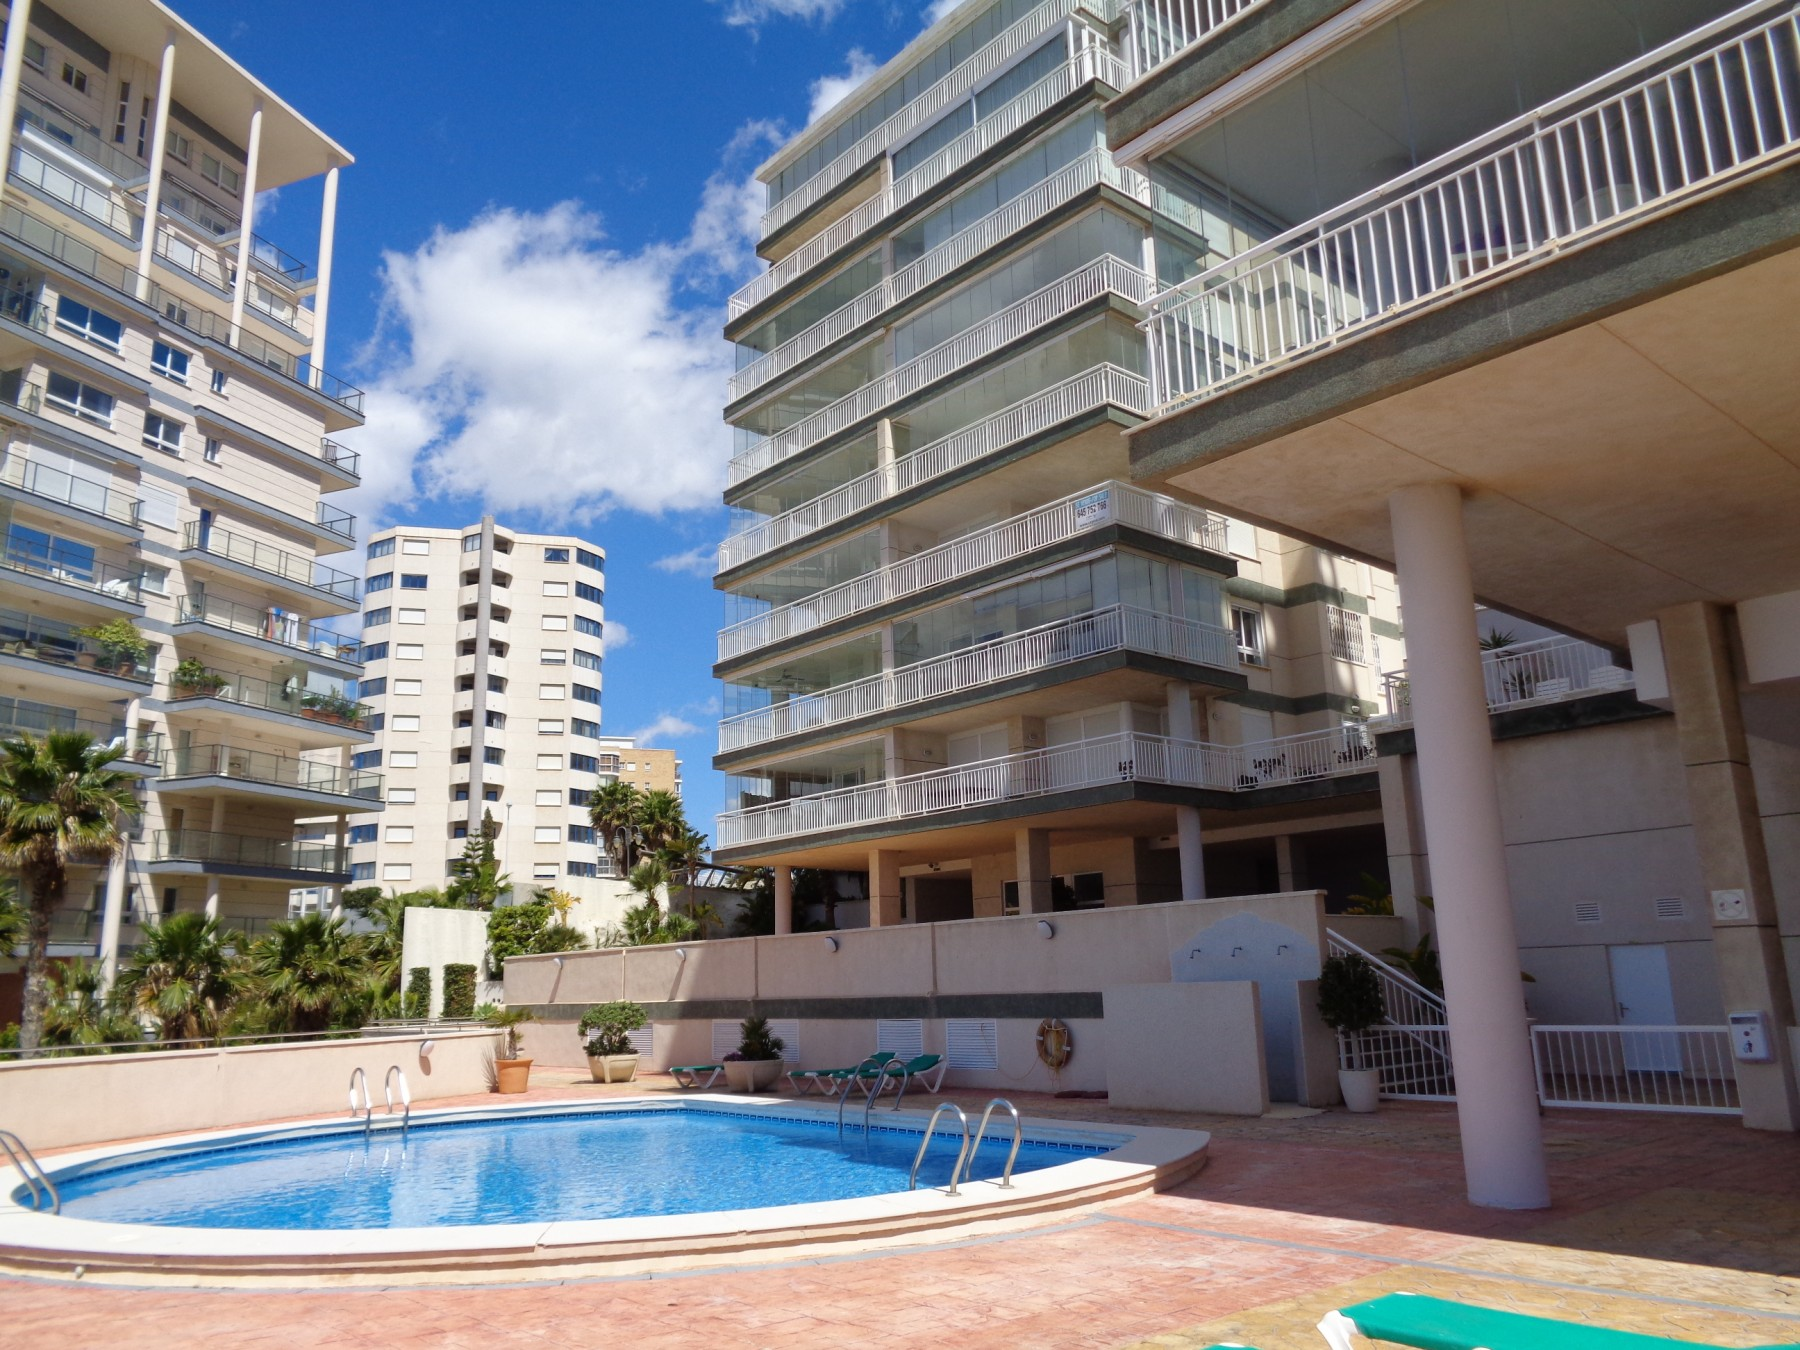 A108 Club Nautico B 2º 3 Calpe Calp Apartment